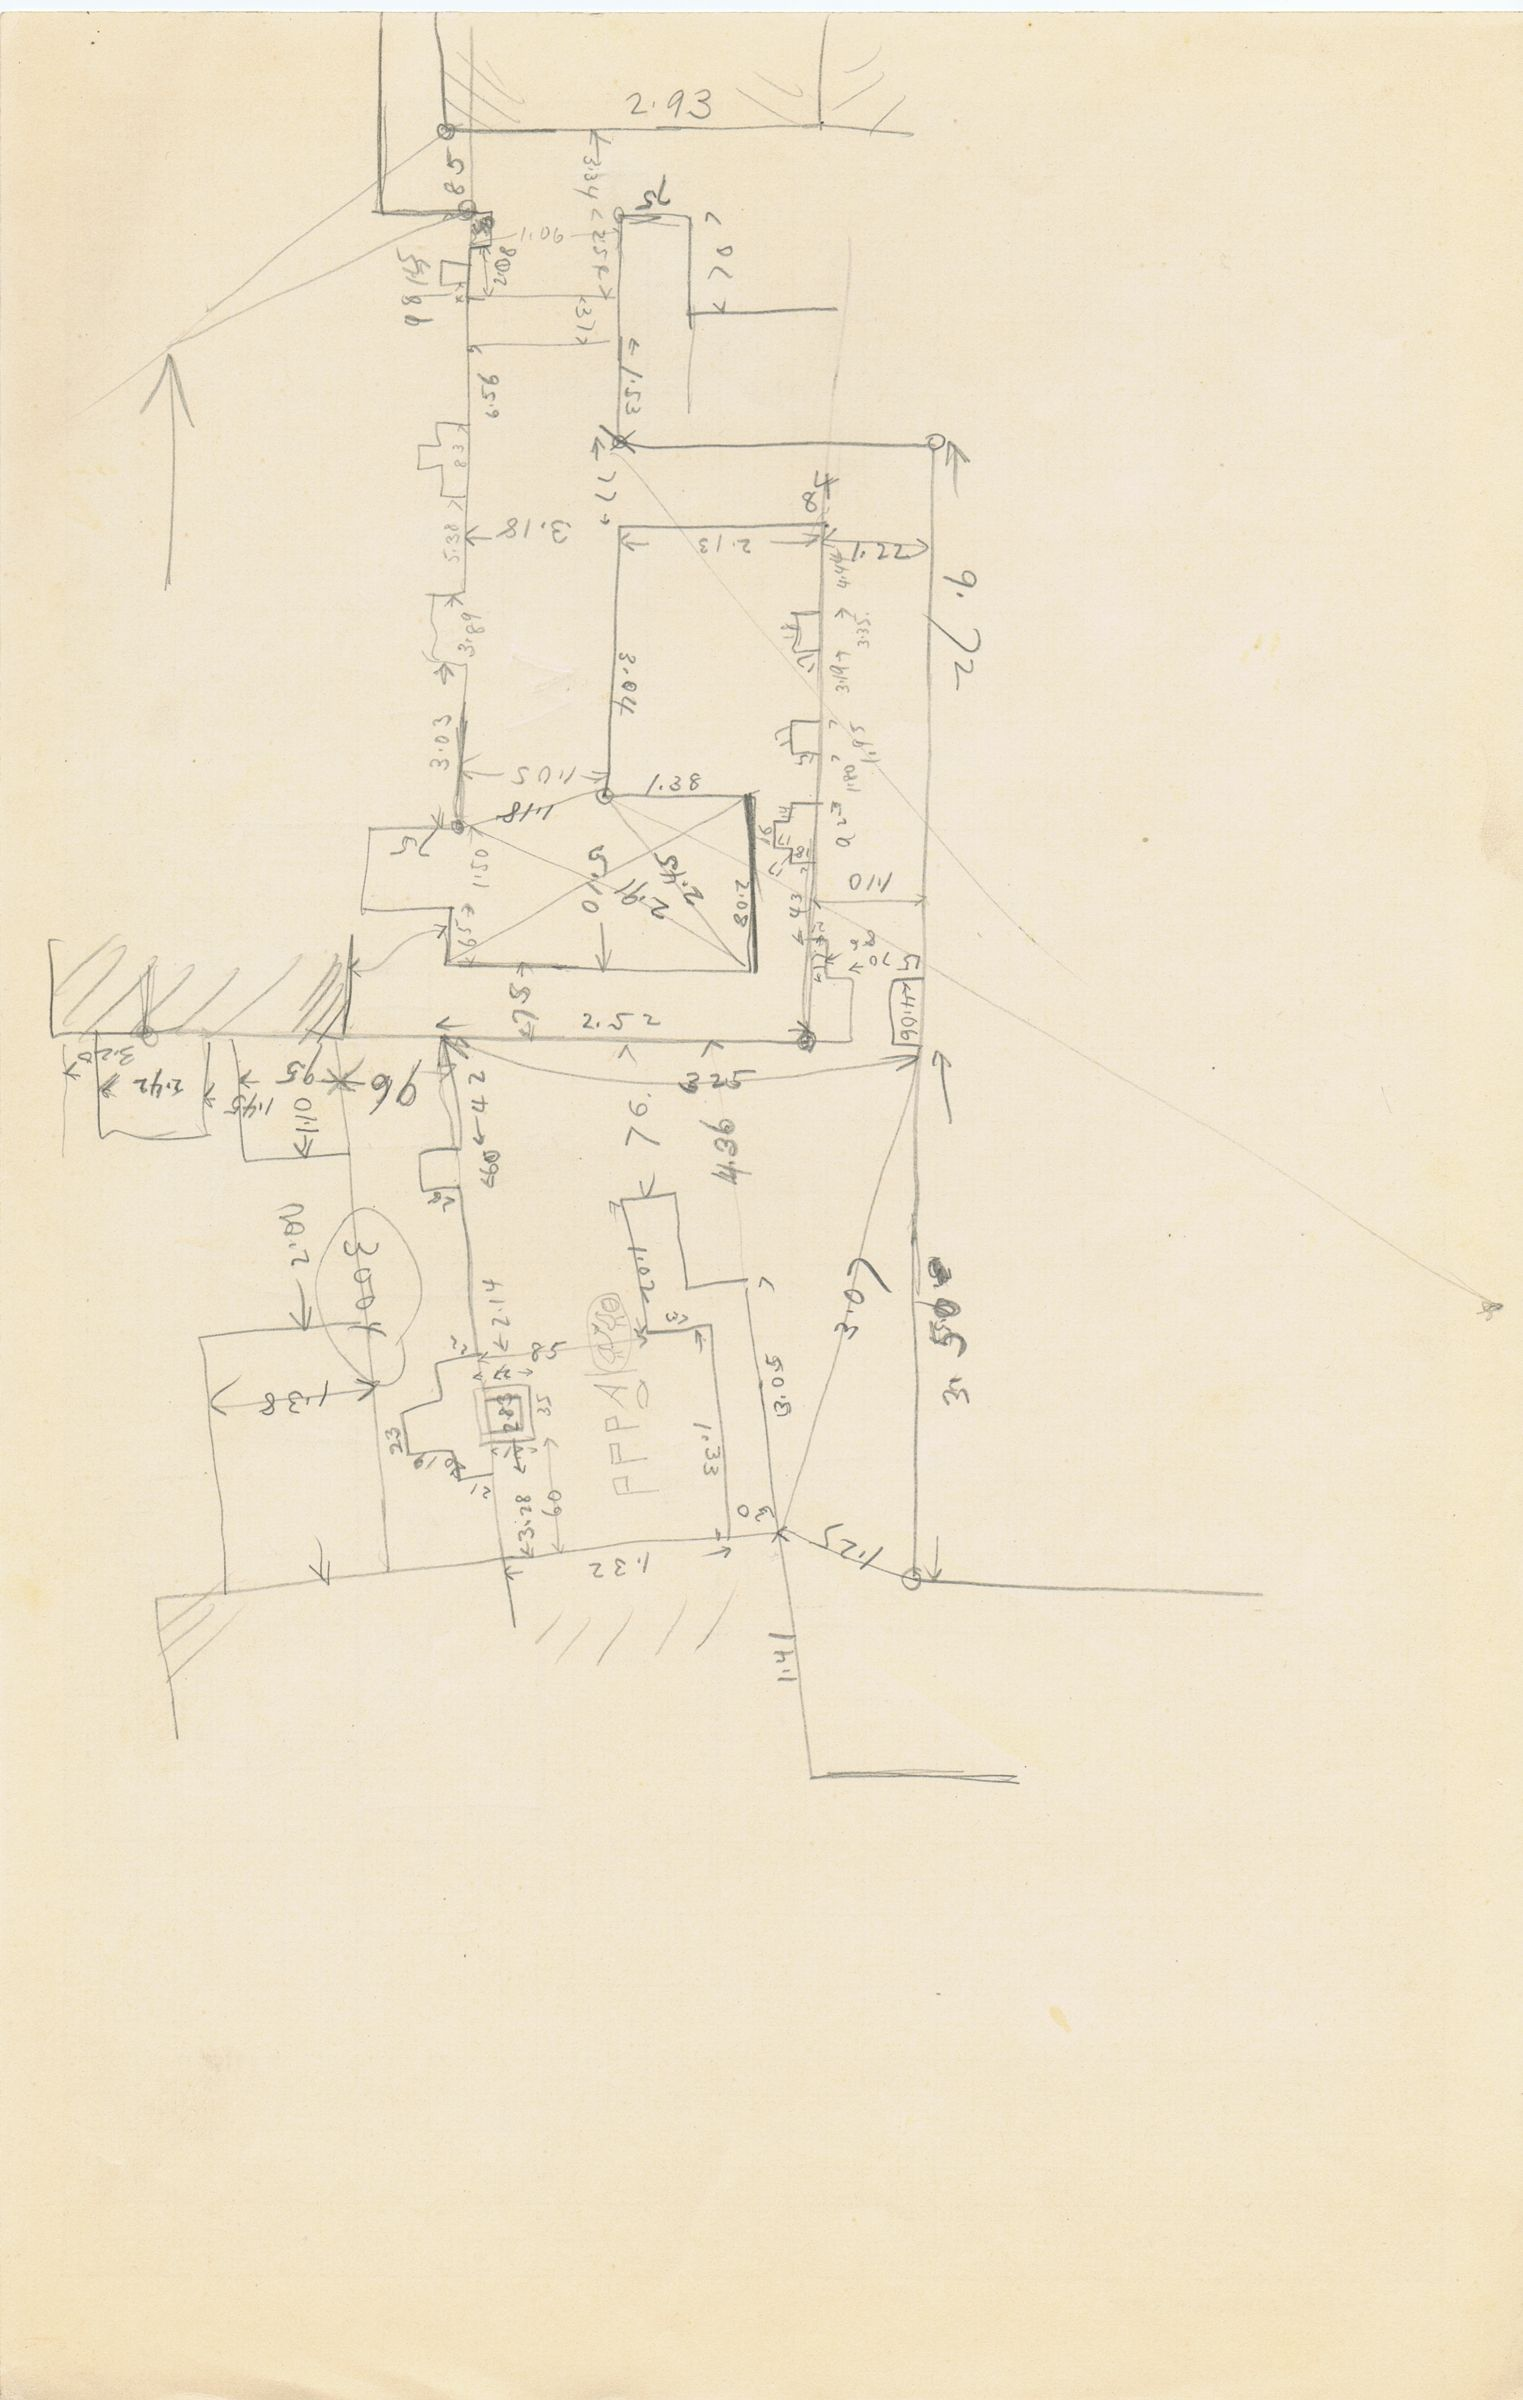 Maps and plans: Sketch plan of G 3004 and G 3005